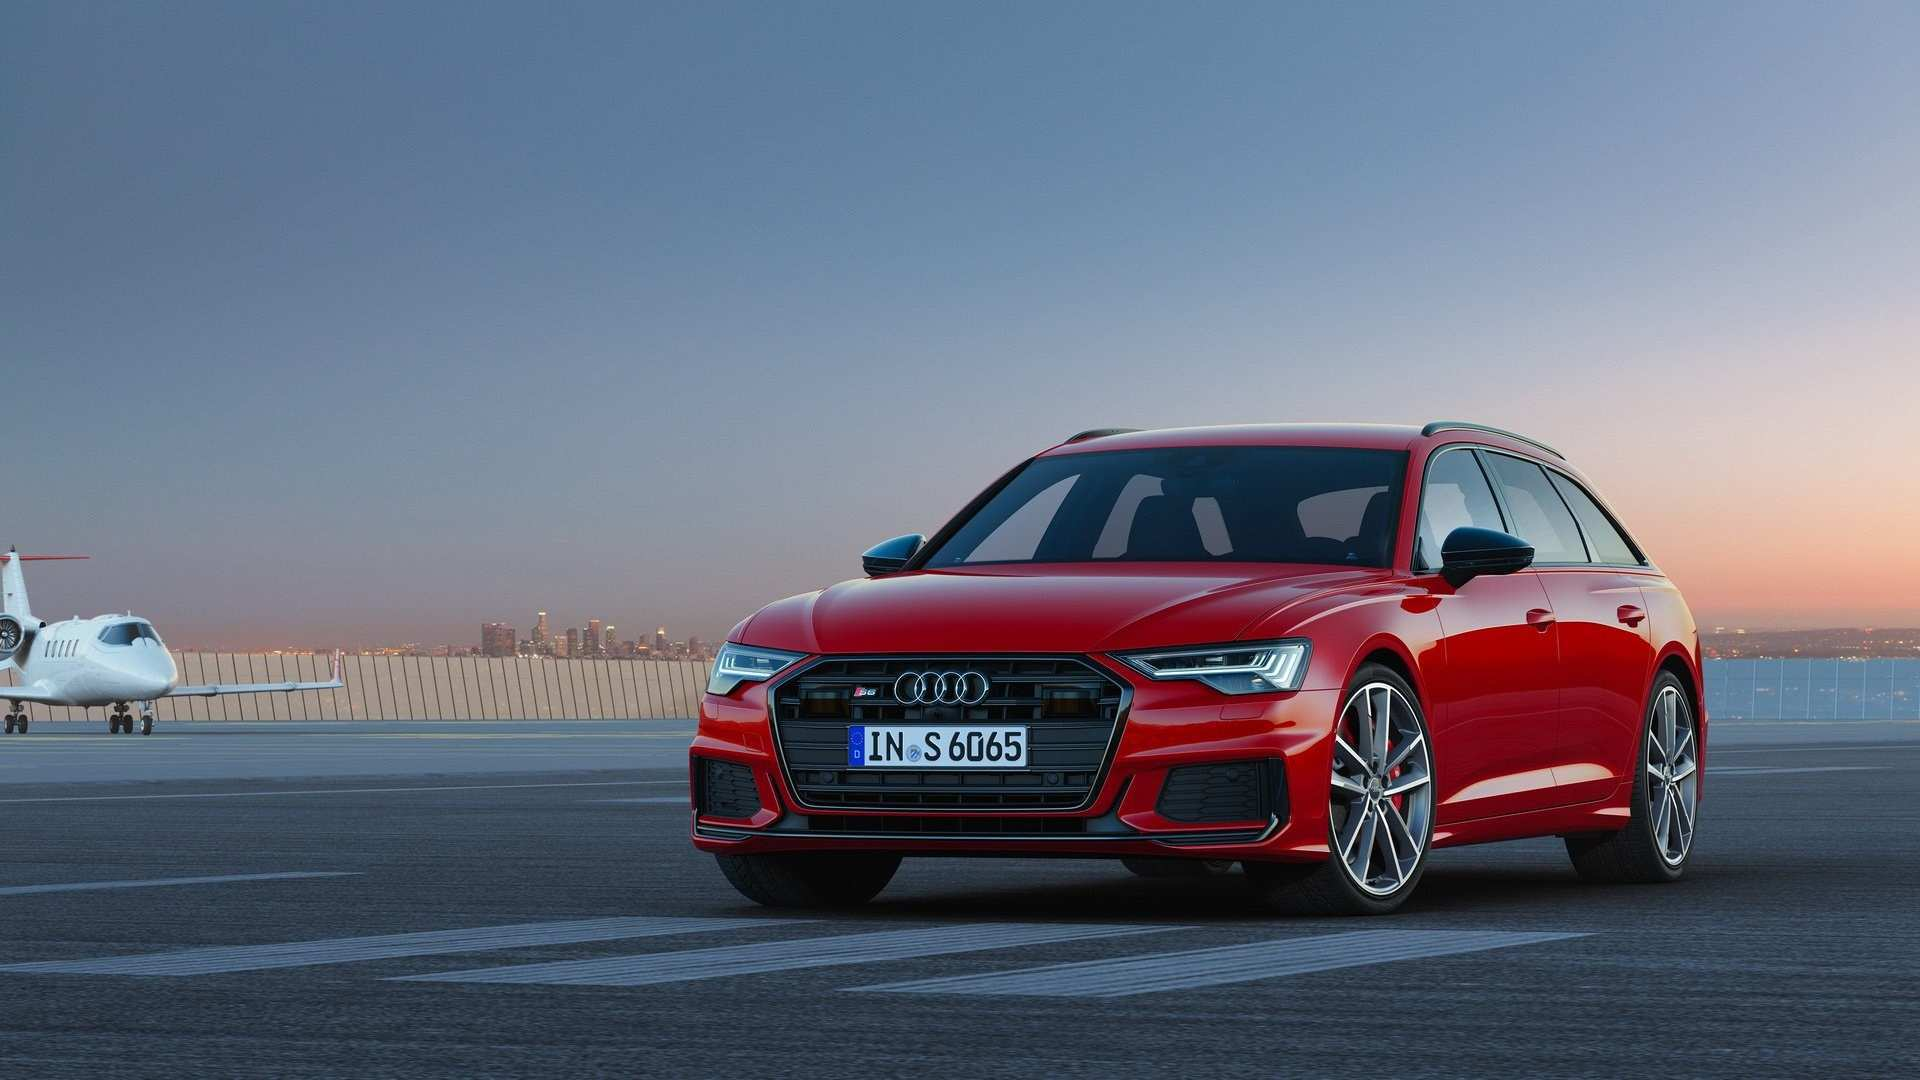 17 All New 2020 Audi S6 Release